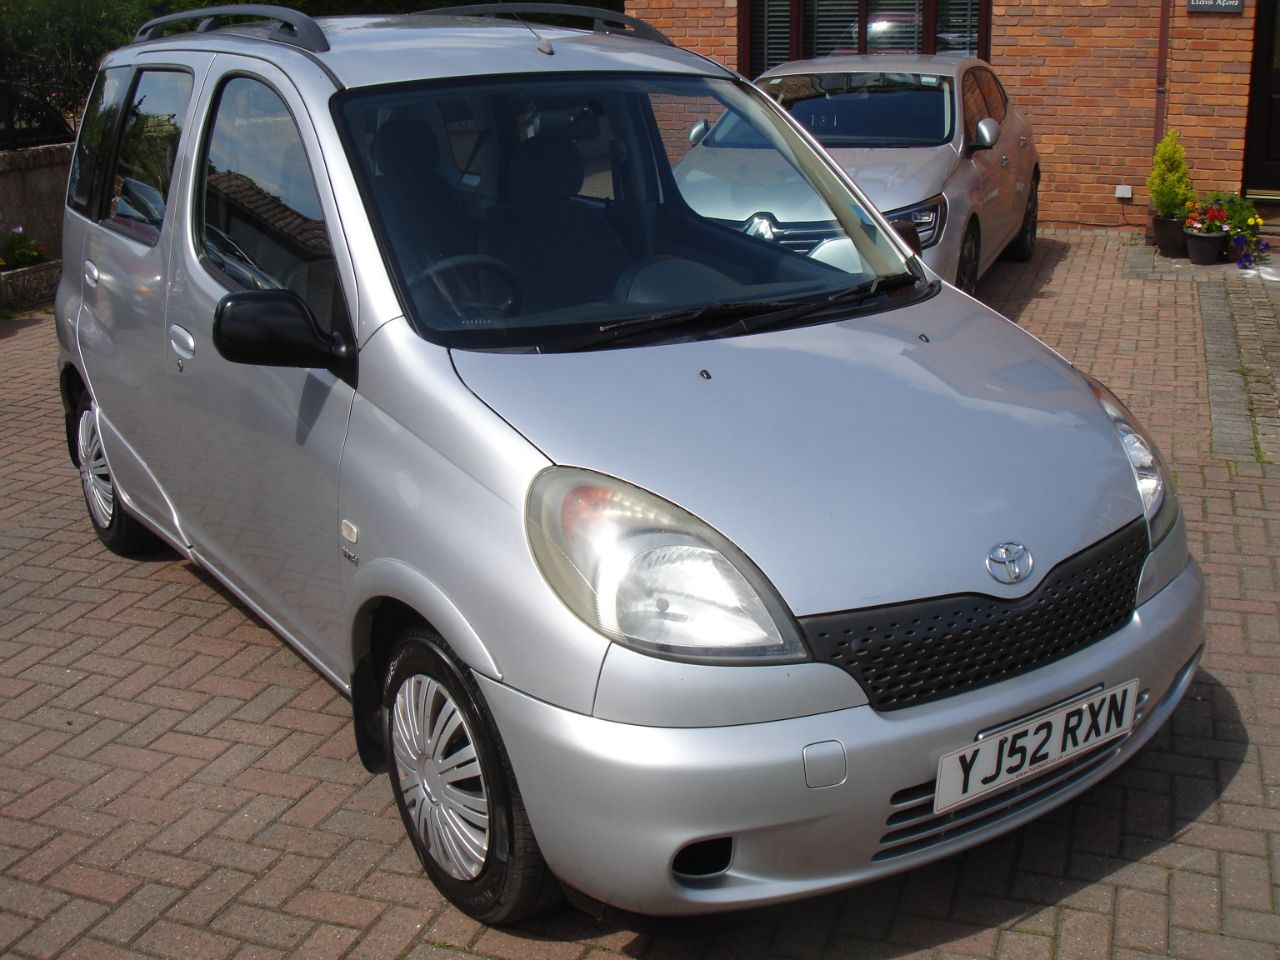 Toyota Yaris Verso 1.3 16v VVTi GS 5dr Automatic MPV Petrol Silver at Level Pitch Selby